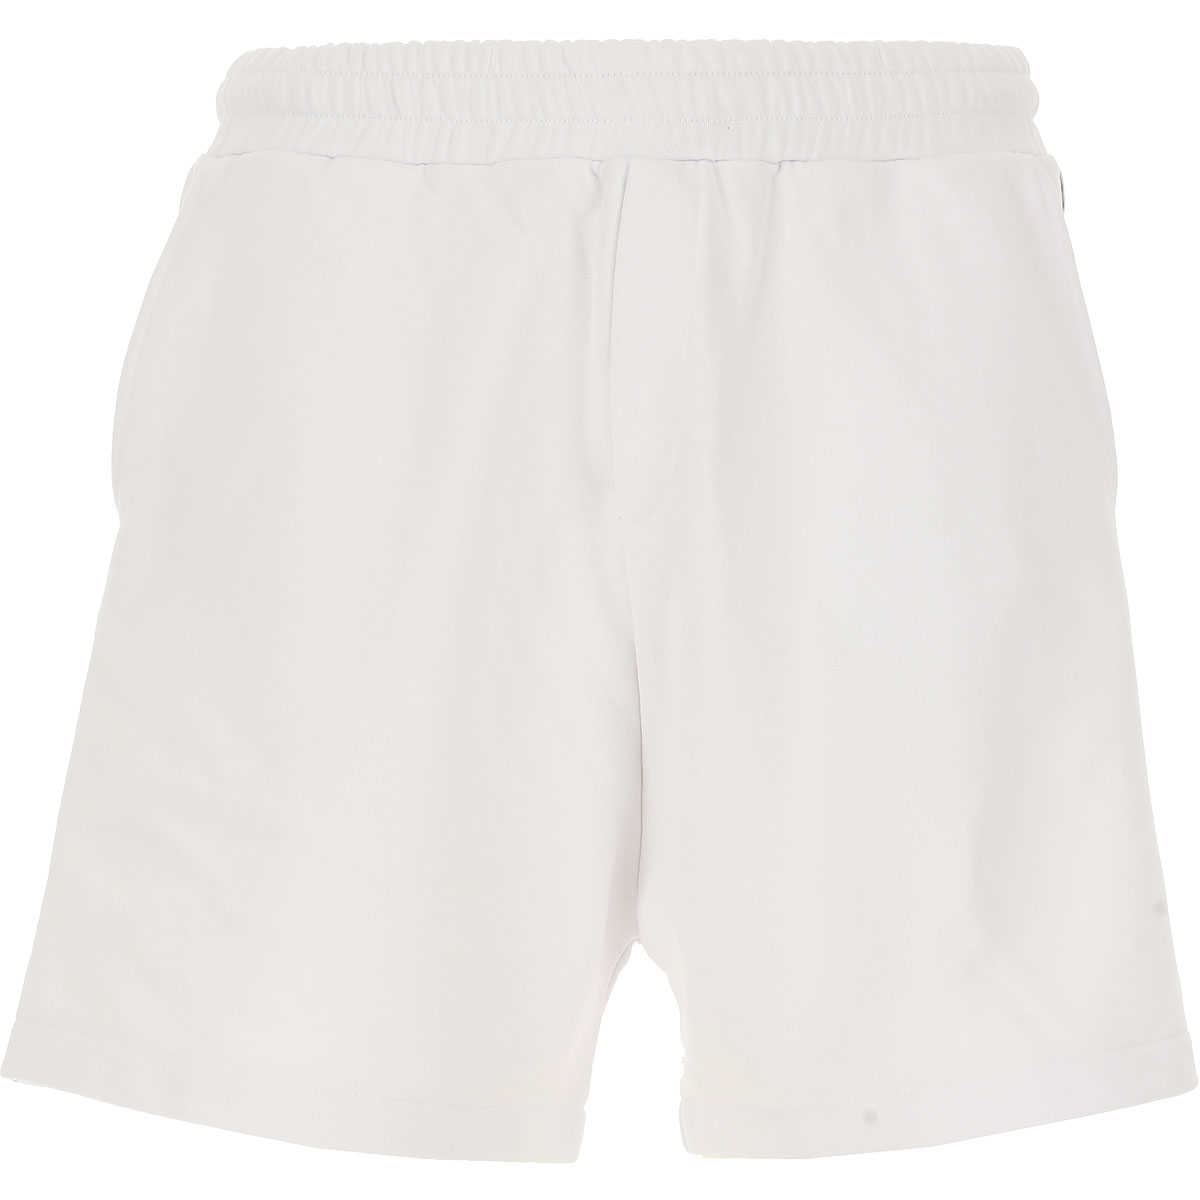 Alexander McQueen McQ Pants for Men On Sale in Outlet White SE - GOOFASH